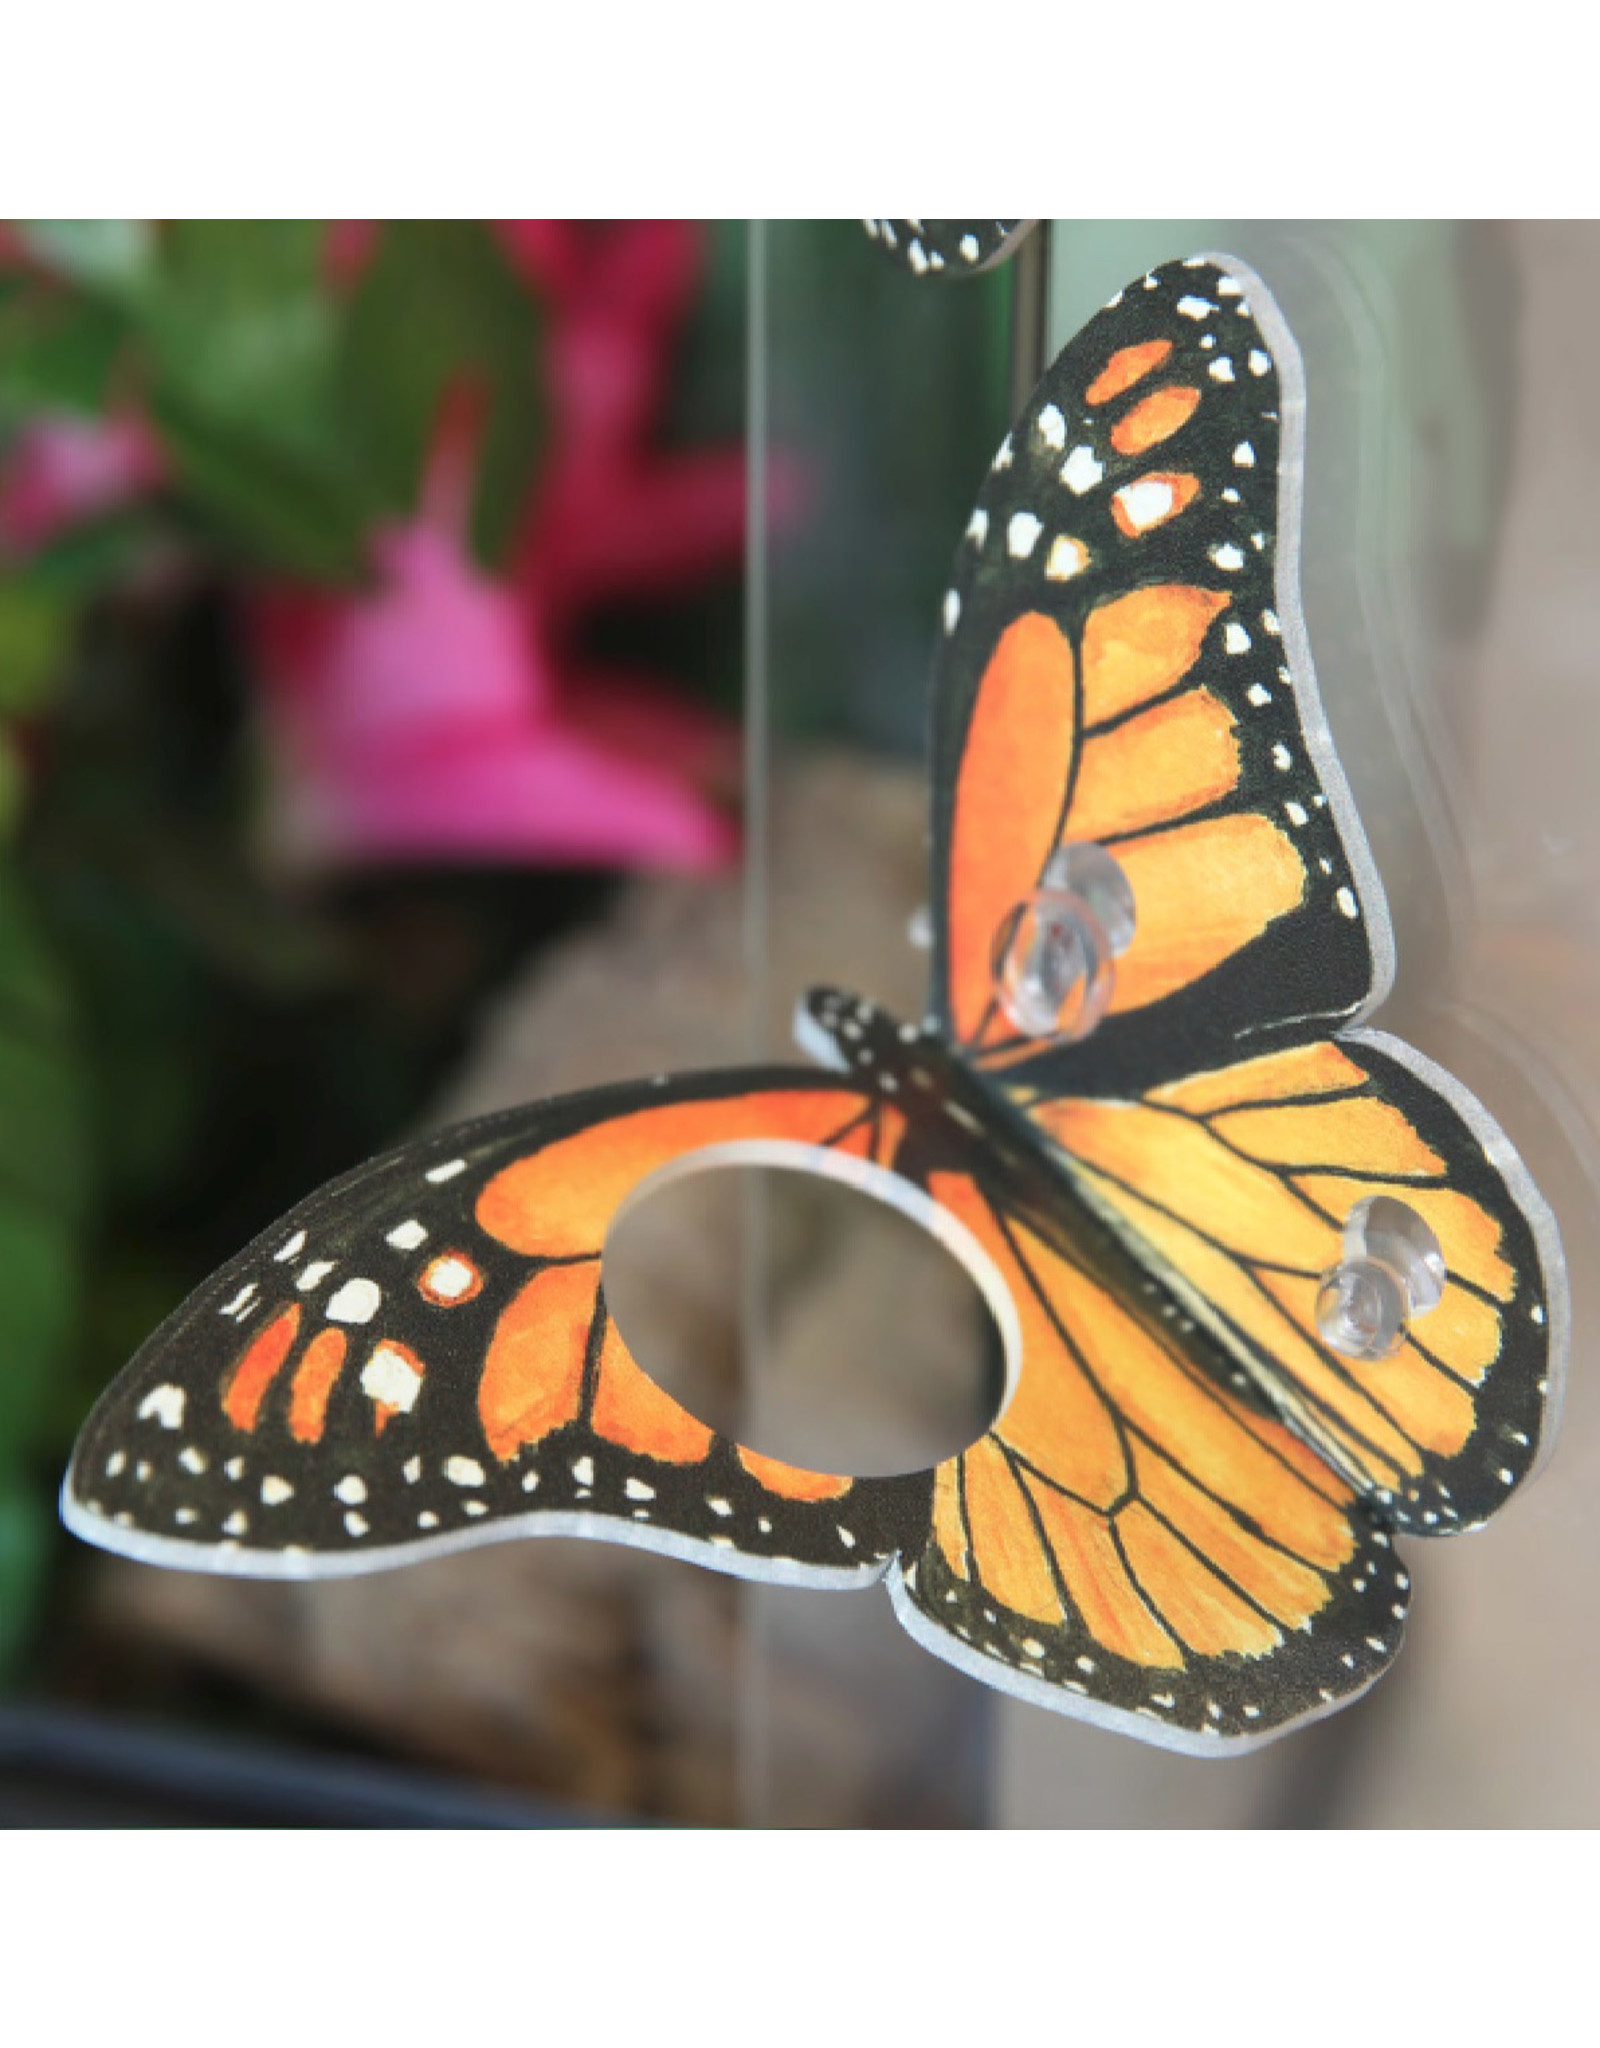 C3 - Colorful Crested Creatures C3 Butterfly Ledge w/ Suction Cup 0.5oz